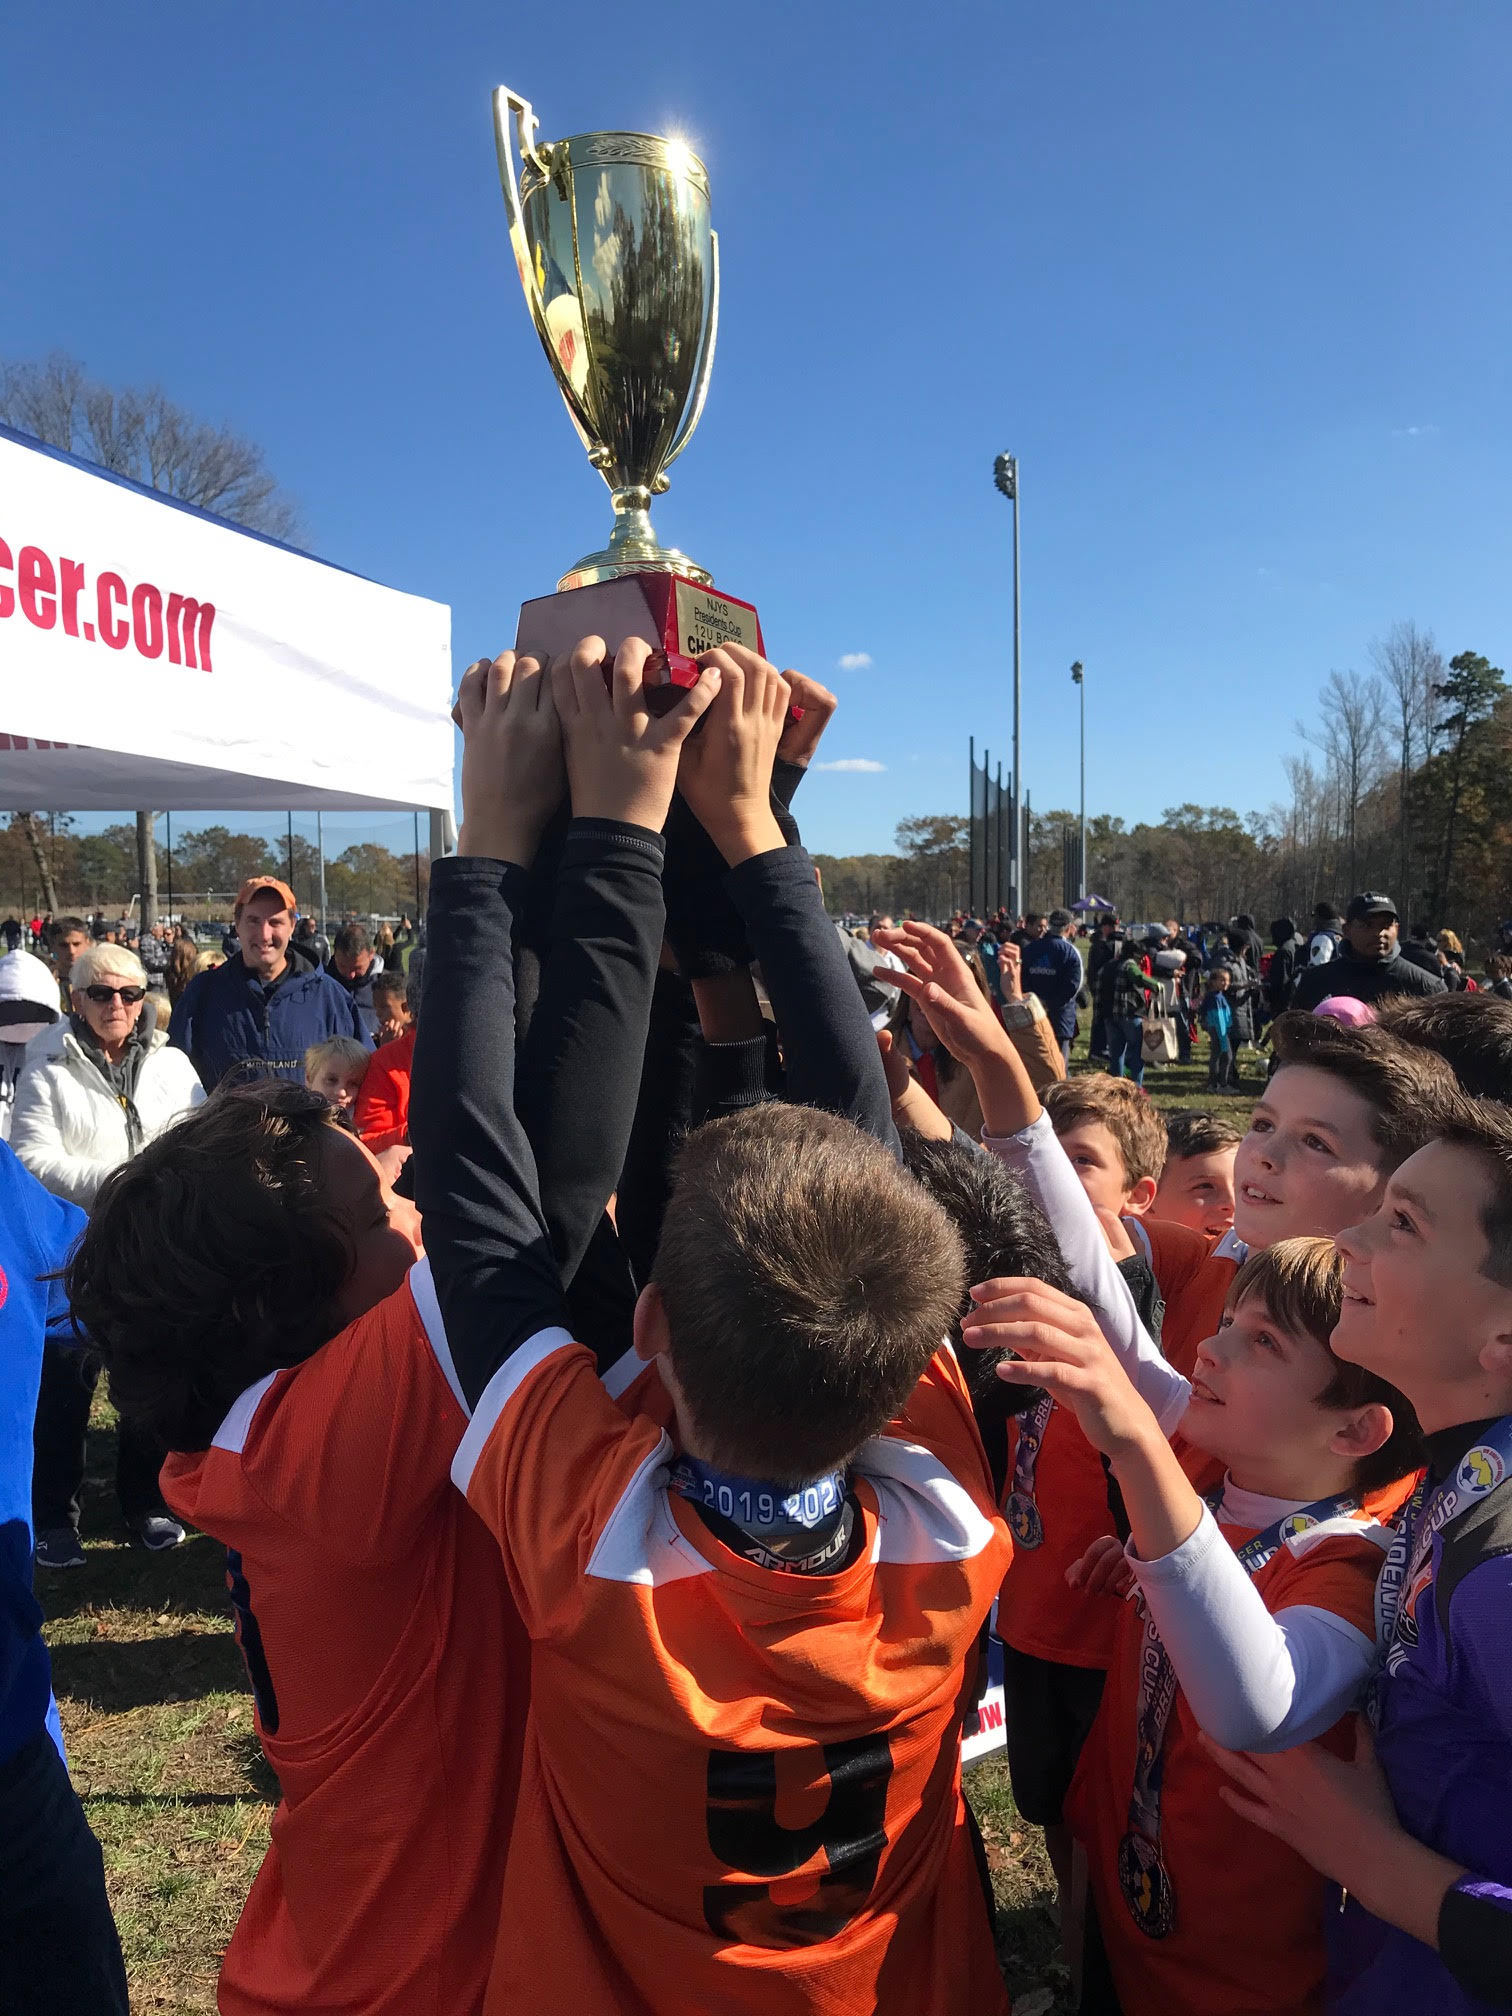 Lifting The Trophy